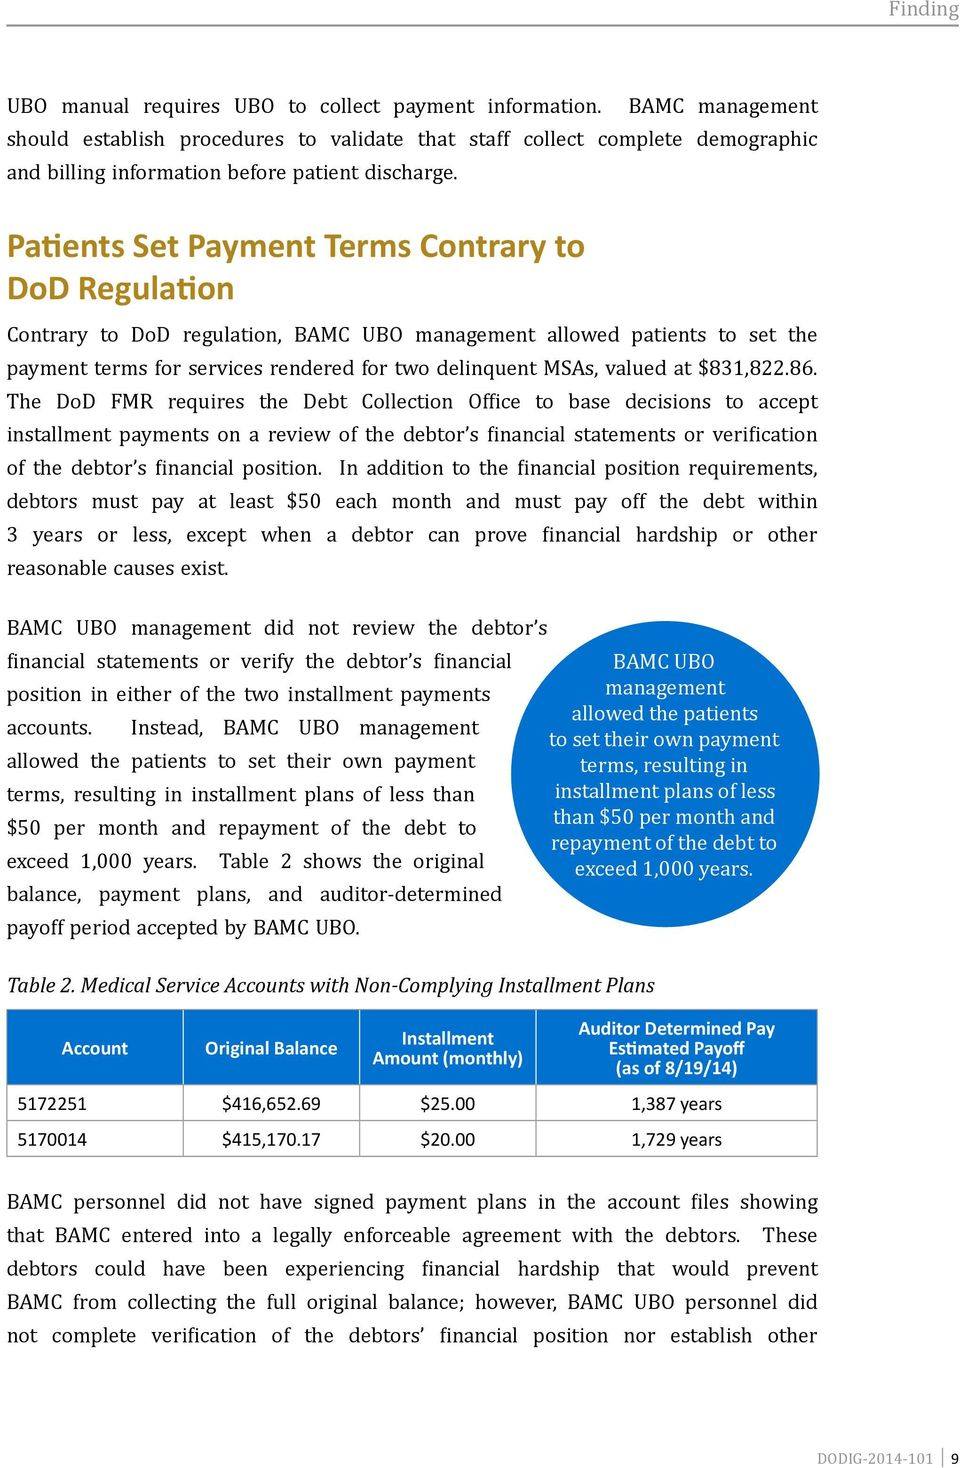 Patients Set Payment Terms Contrary to DoD Regulation Contrary to DoD regulation, BAMC UBO management allowed patients to set the payment terms for services rendered for two delinquent MSAs, valued